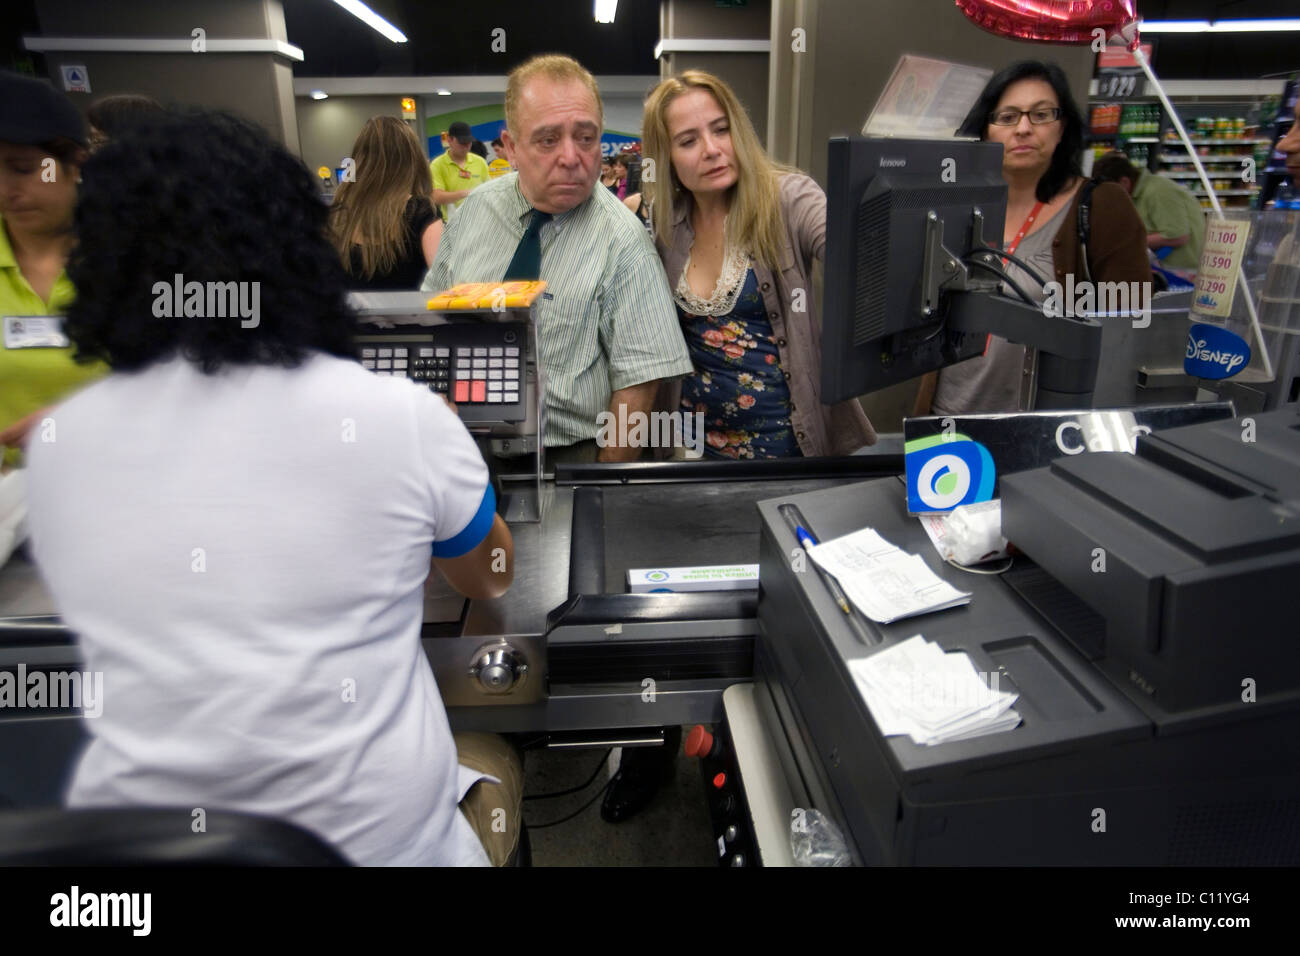 People looking at till display in a supermarket, Santiago de Chile - Stock Image